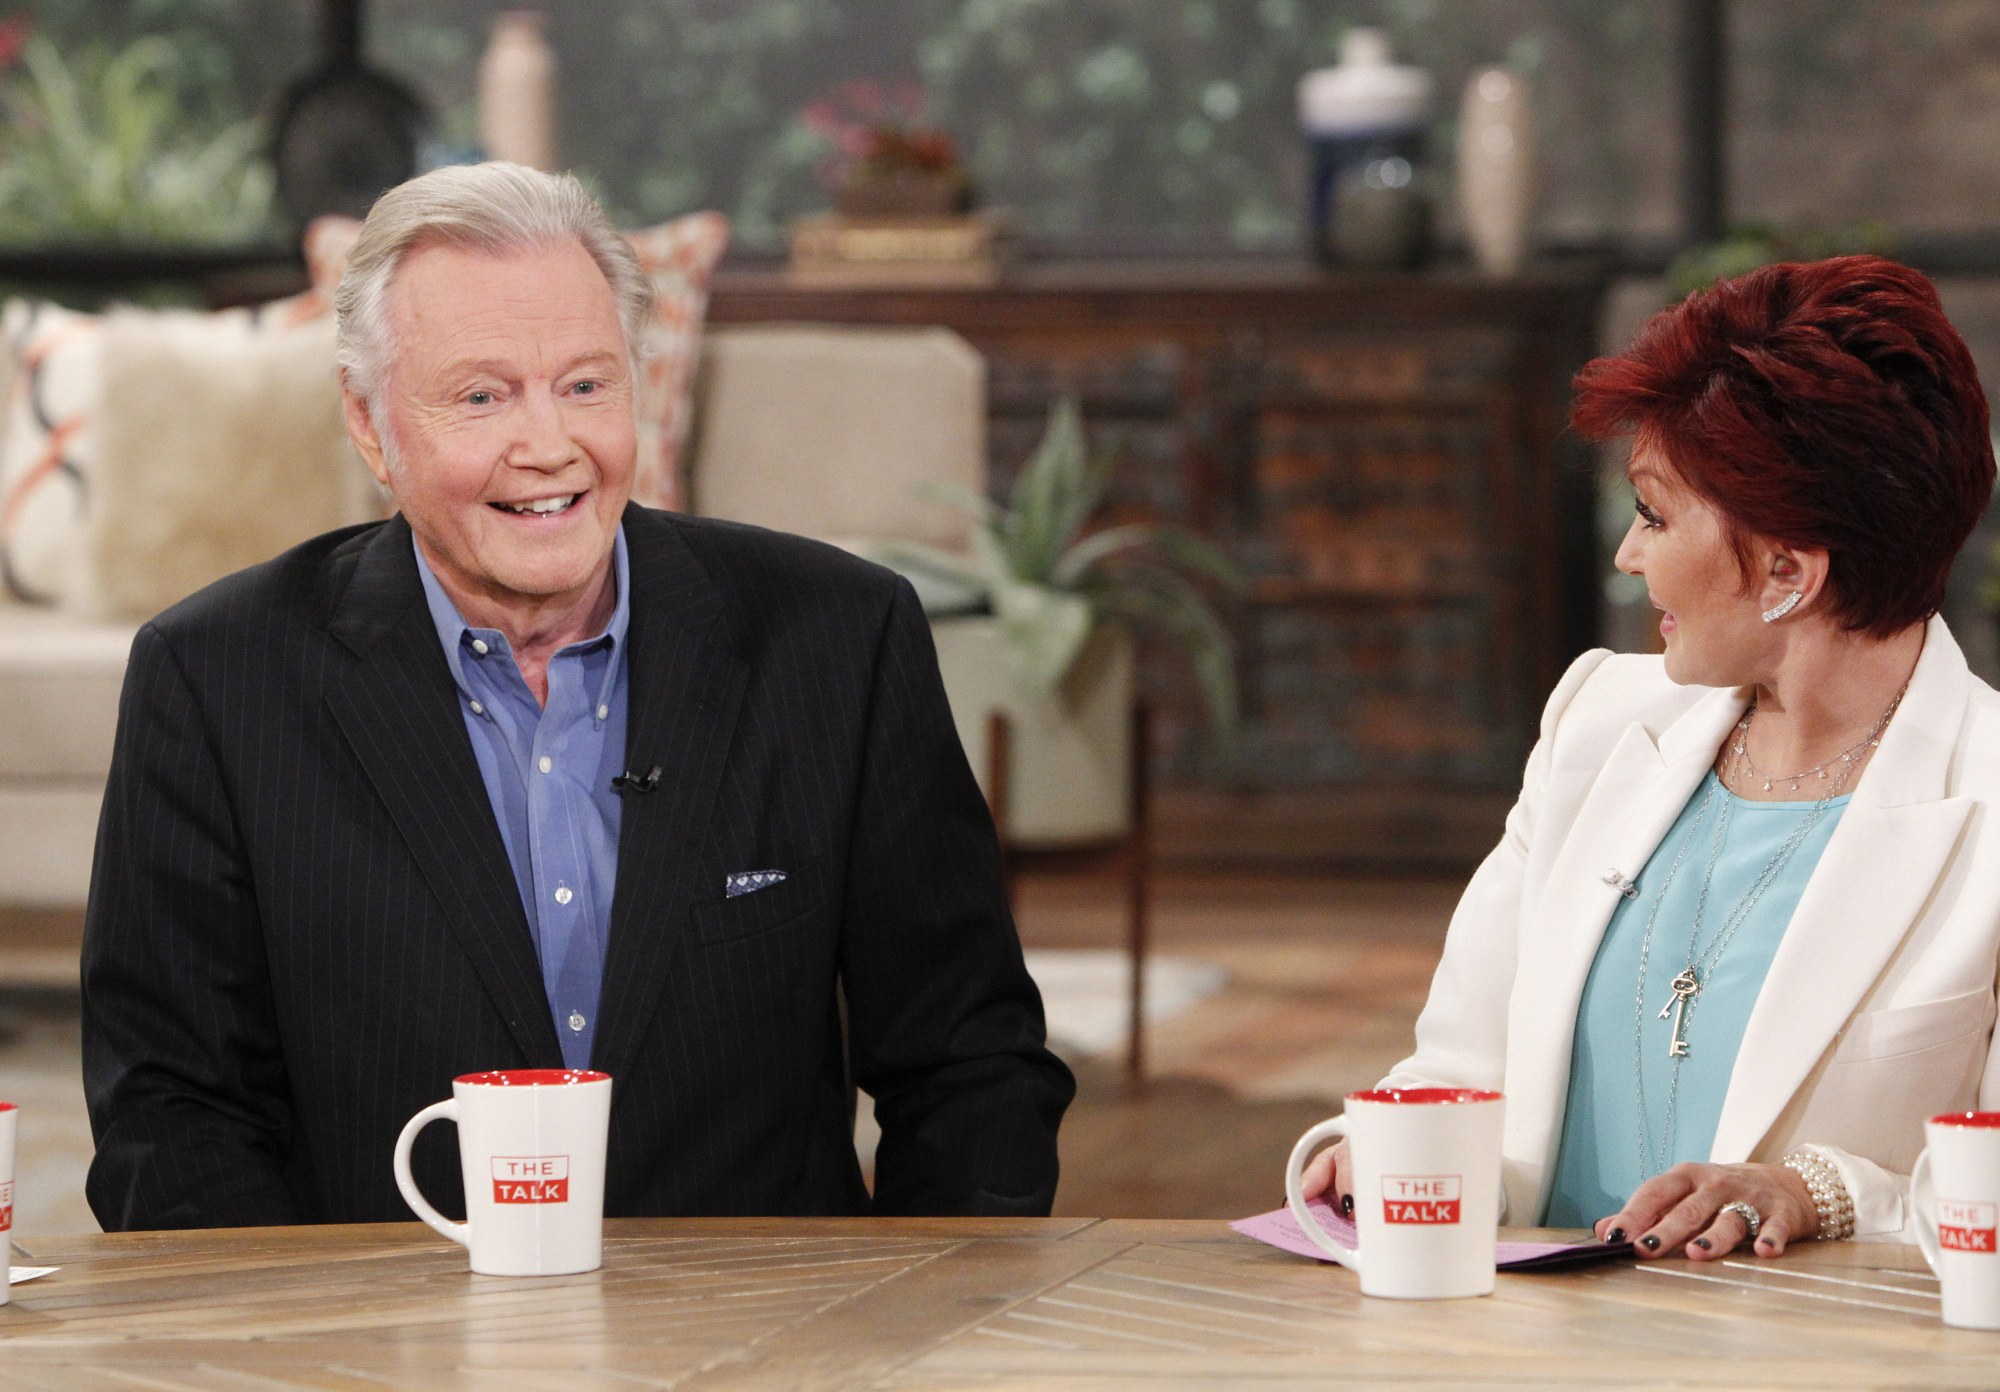 Jon Voight Dishes on 'Ray Donovan'